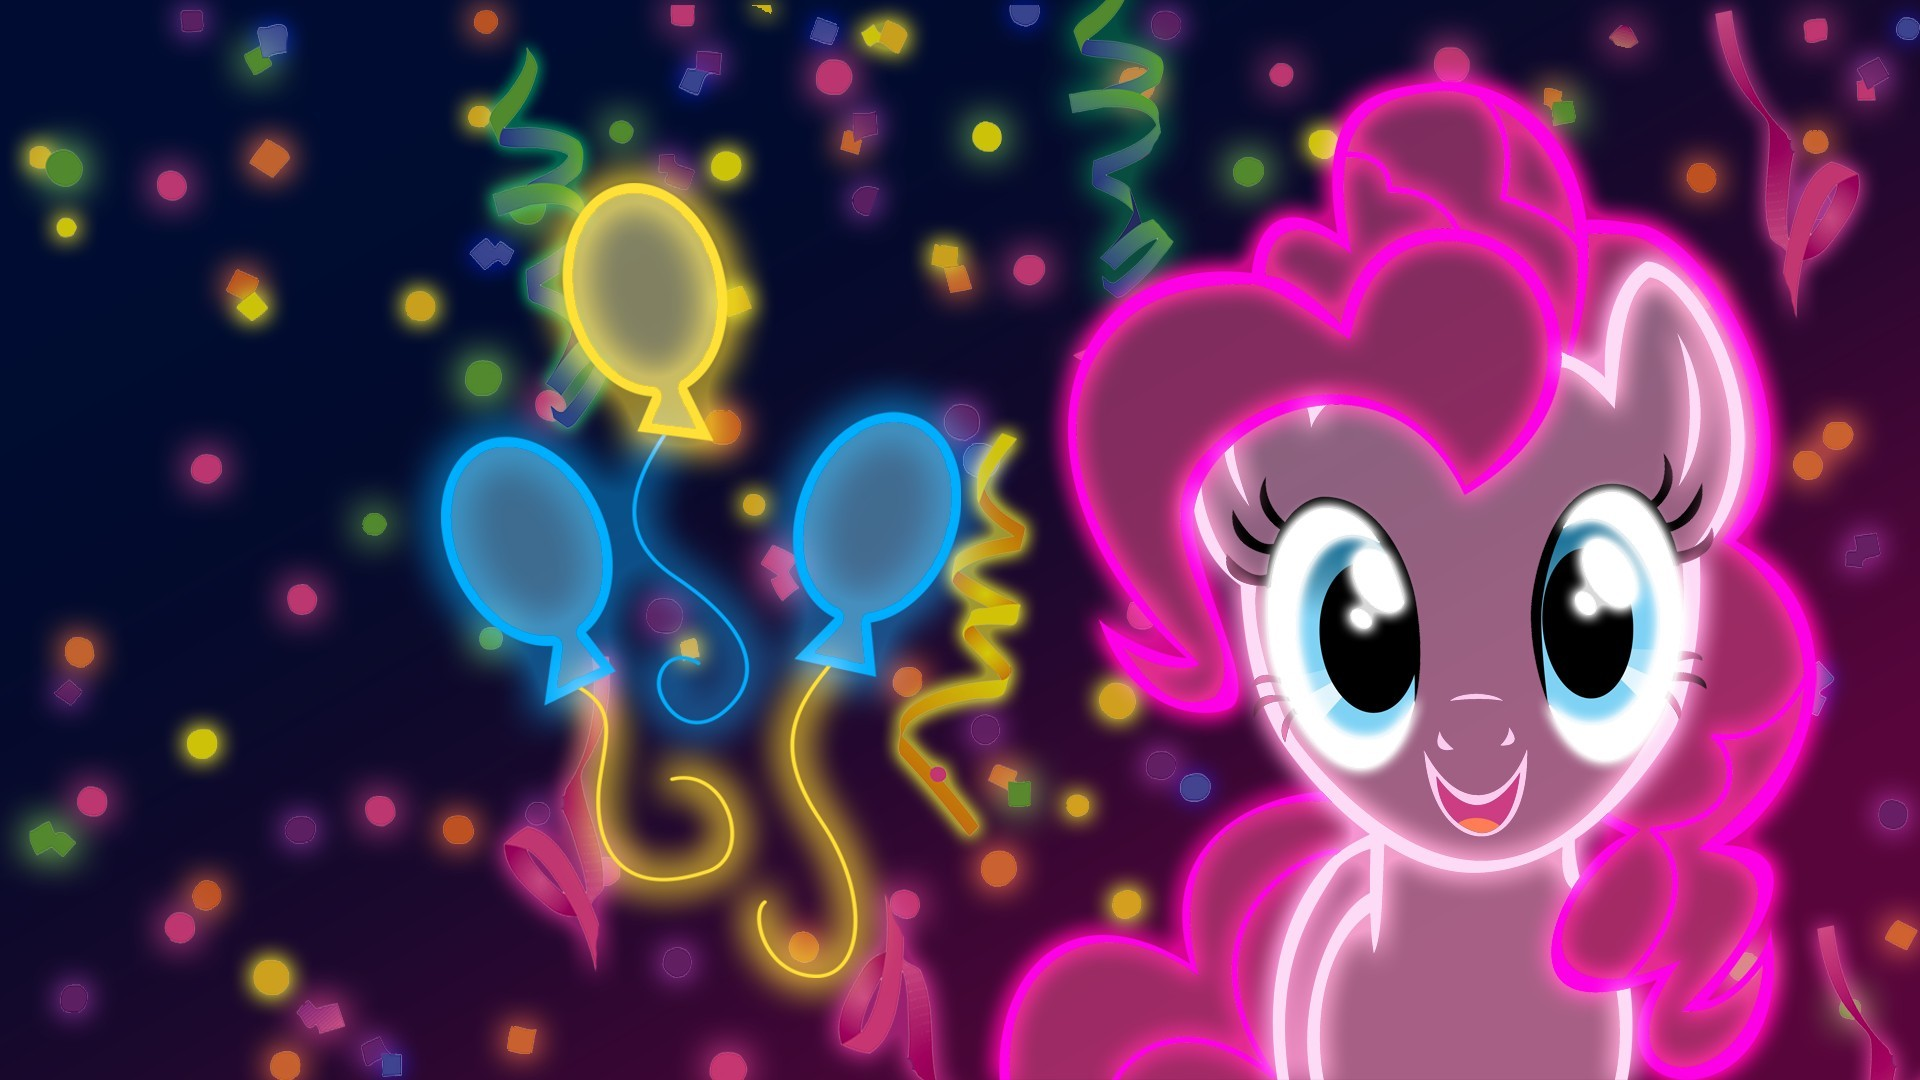 1920x1080 My Little Pony Desktop Wallpapers – My Little Pony Pictures for desktop and  mobile